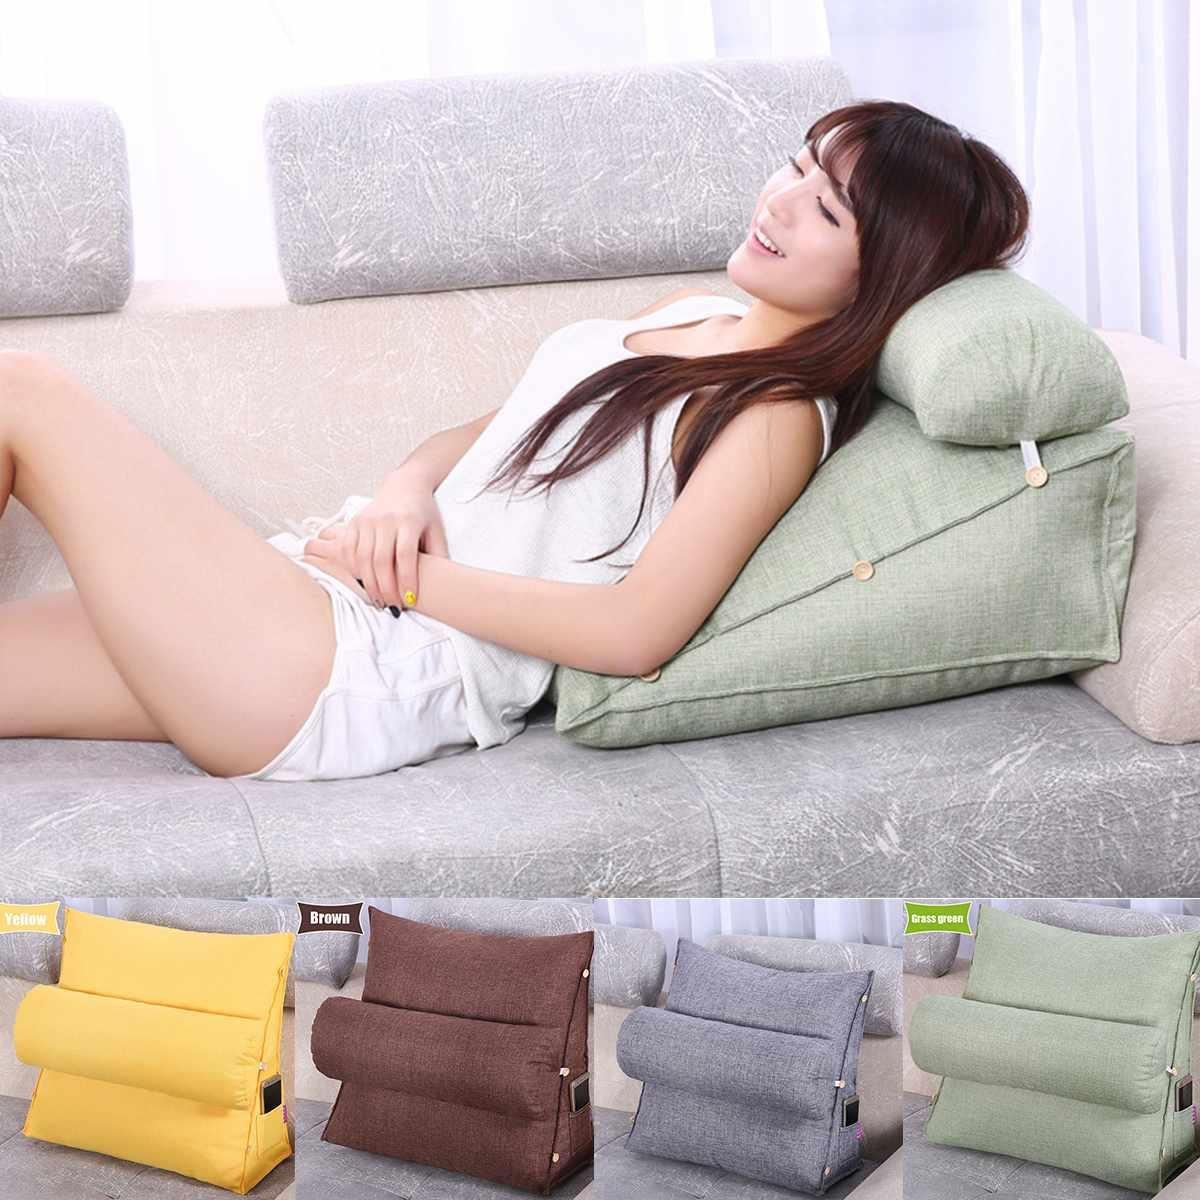 35 bed couch chair sofa cushion with triangular backrest pillow bed backrest office chair pillow support waist cushion